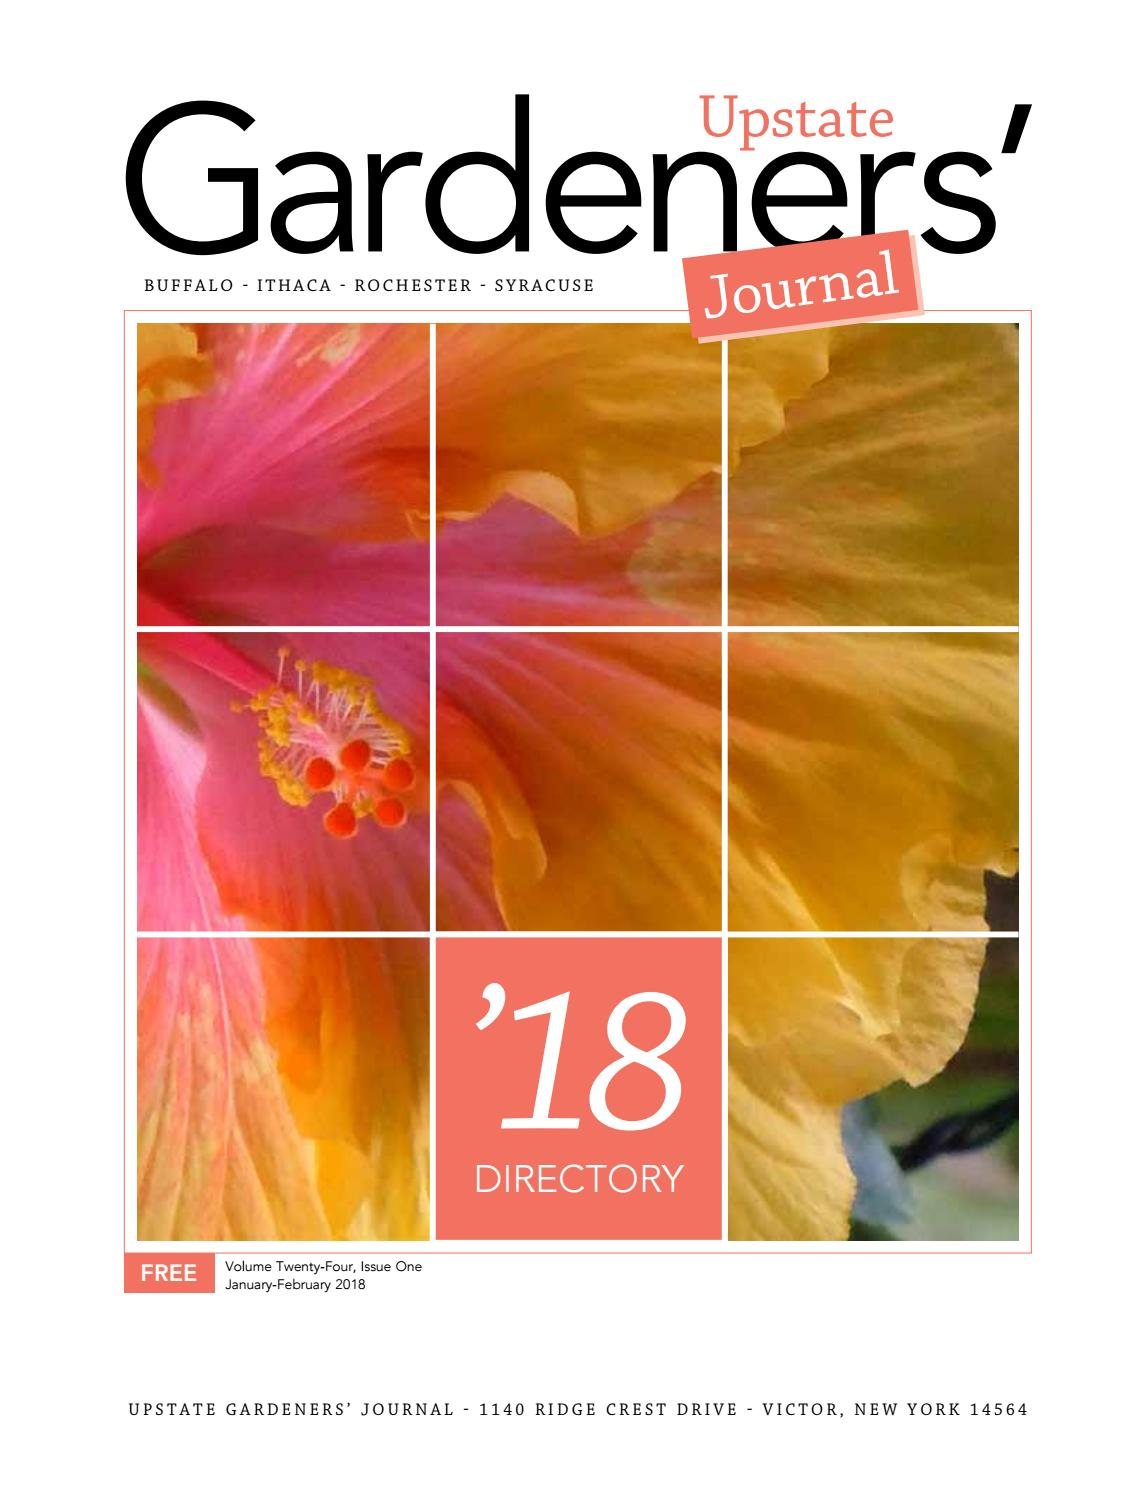 upstate gardeners' journal directory 2018 by upstate